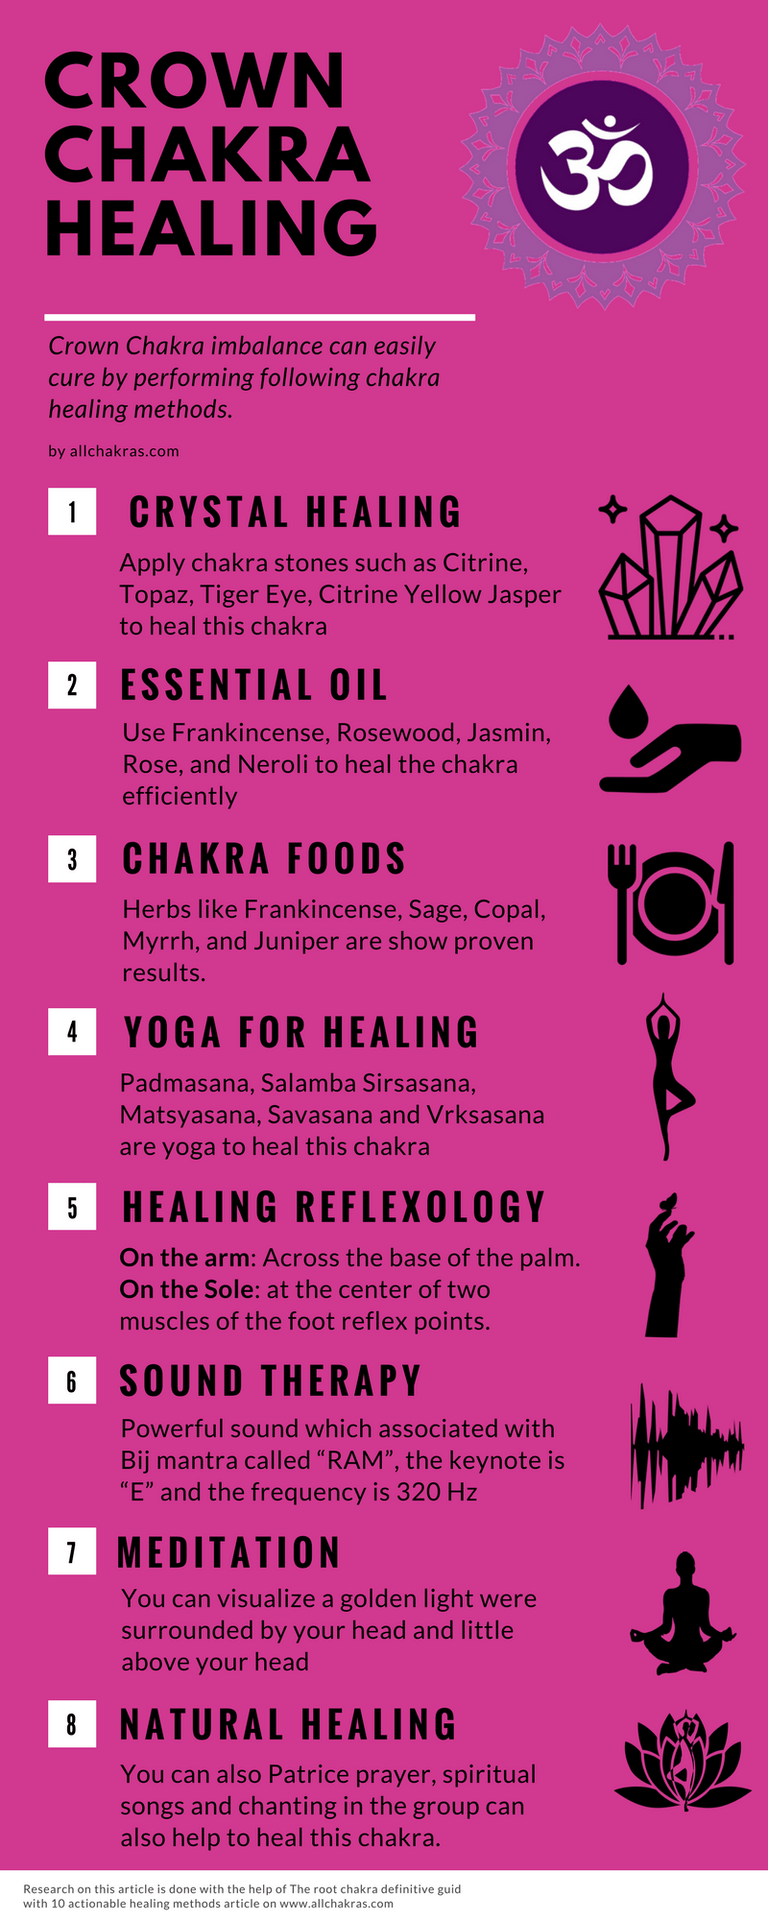 7 Ways Of Crown Chakra Healing Provide Amazing Results